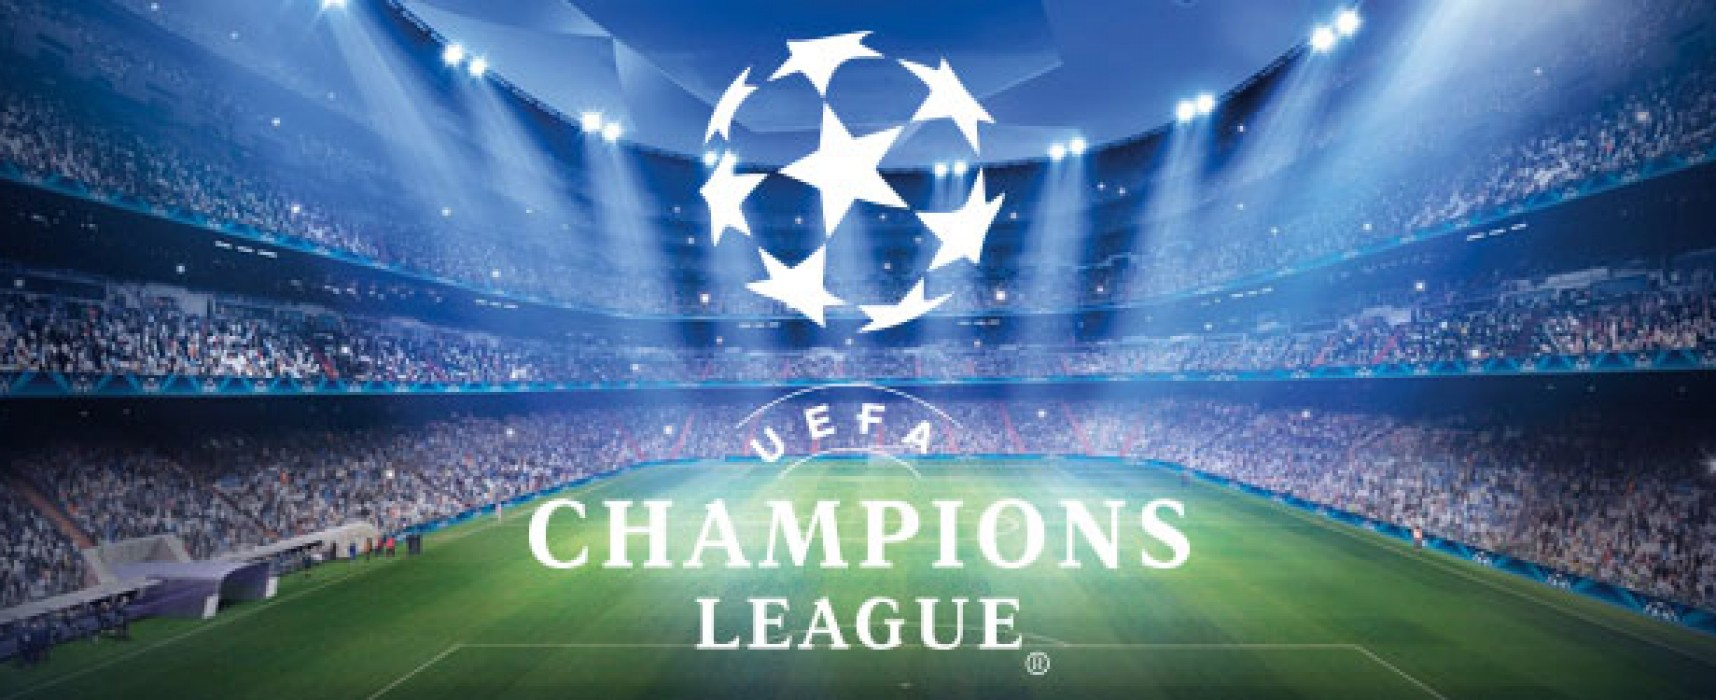 5 jahreswertung champions league